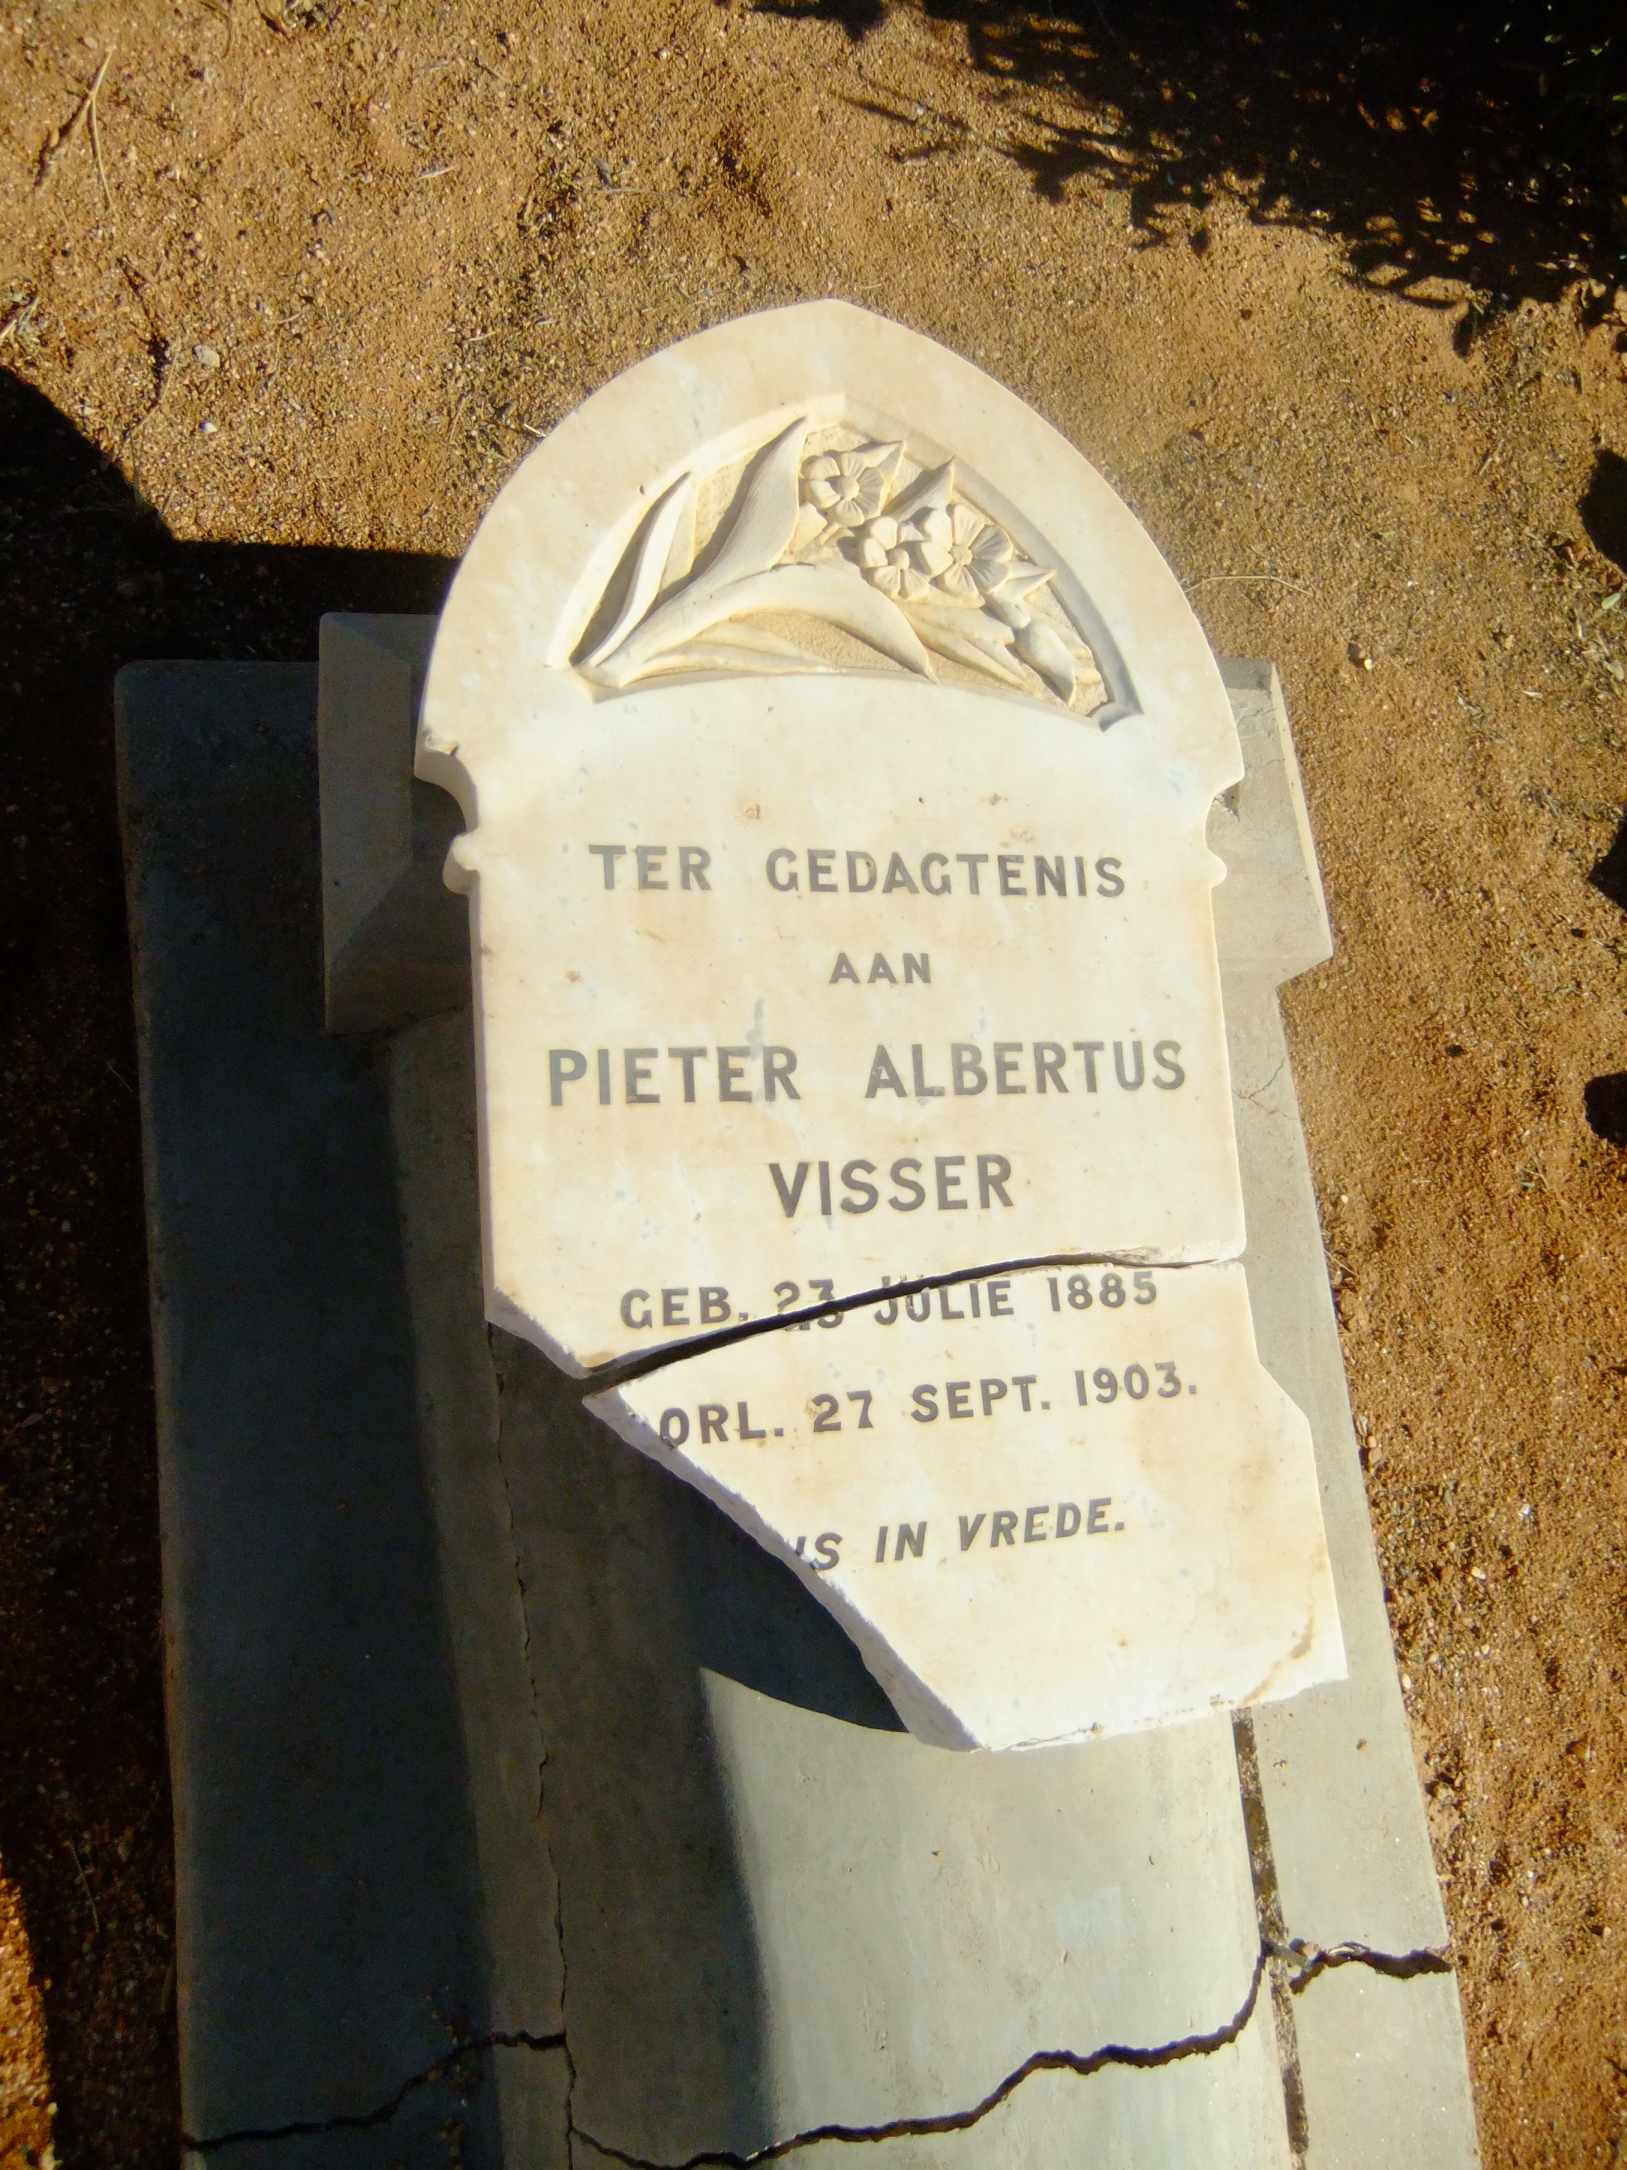 Visser, Pieter Albertus born 23 July 1885 died 27 September 1903